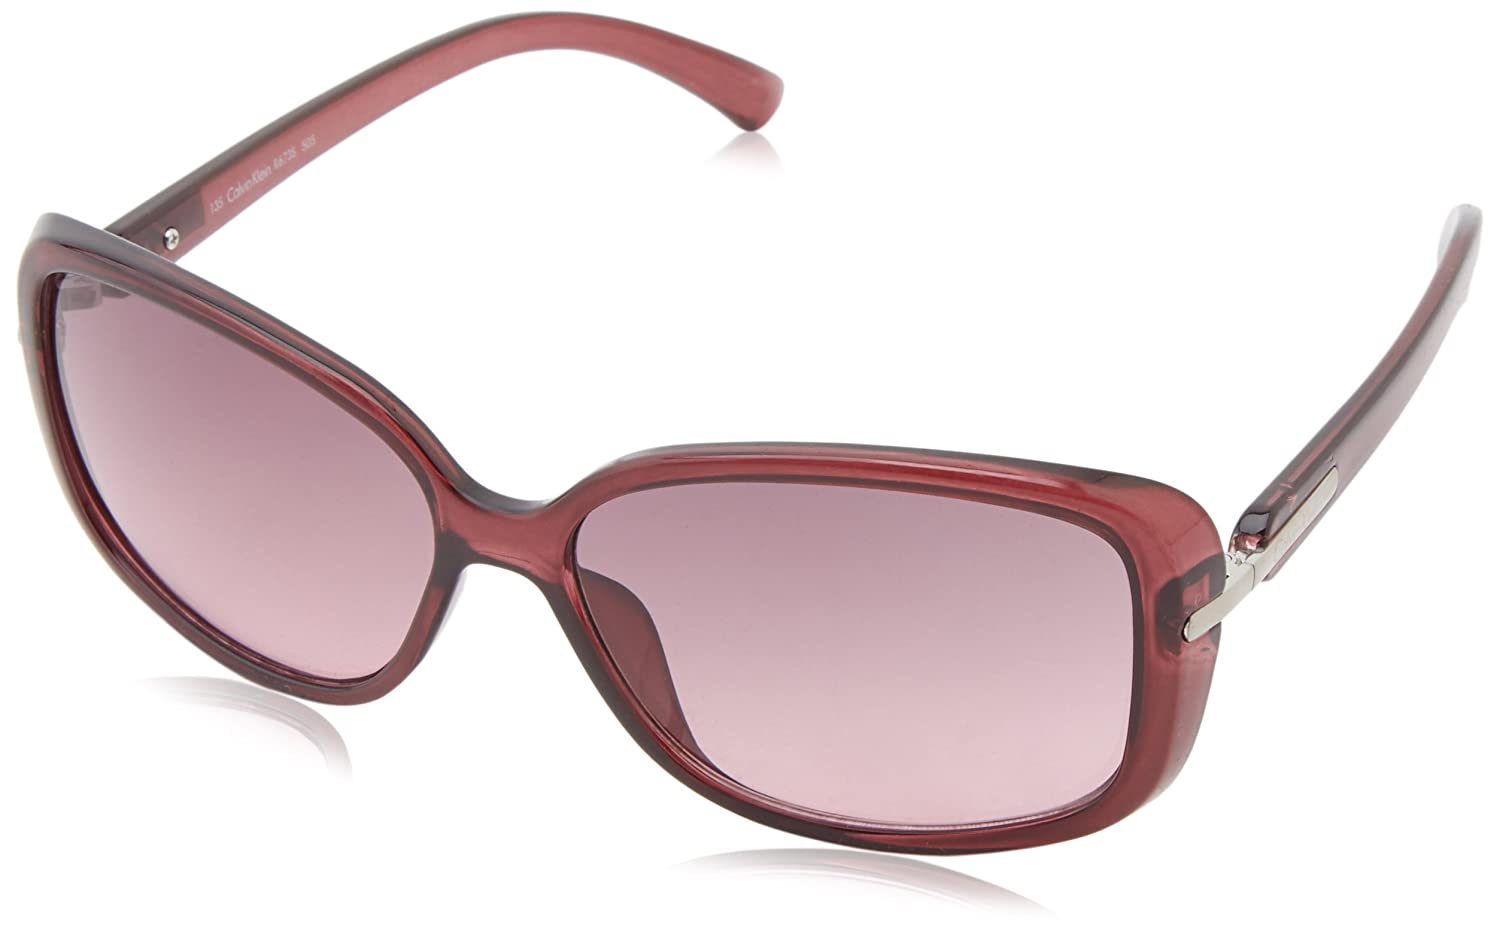 Calvin Klein Women's CWR673S-971 Rectangular Sunglasses Berry 16 mm Calvin Klein Sunglasses